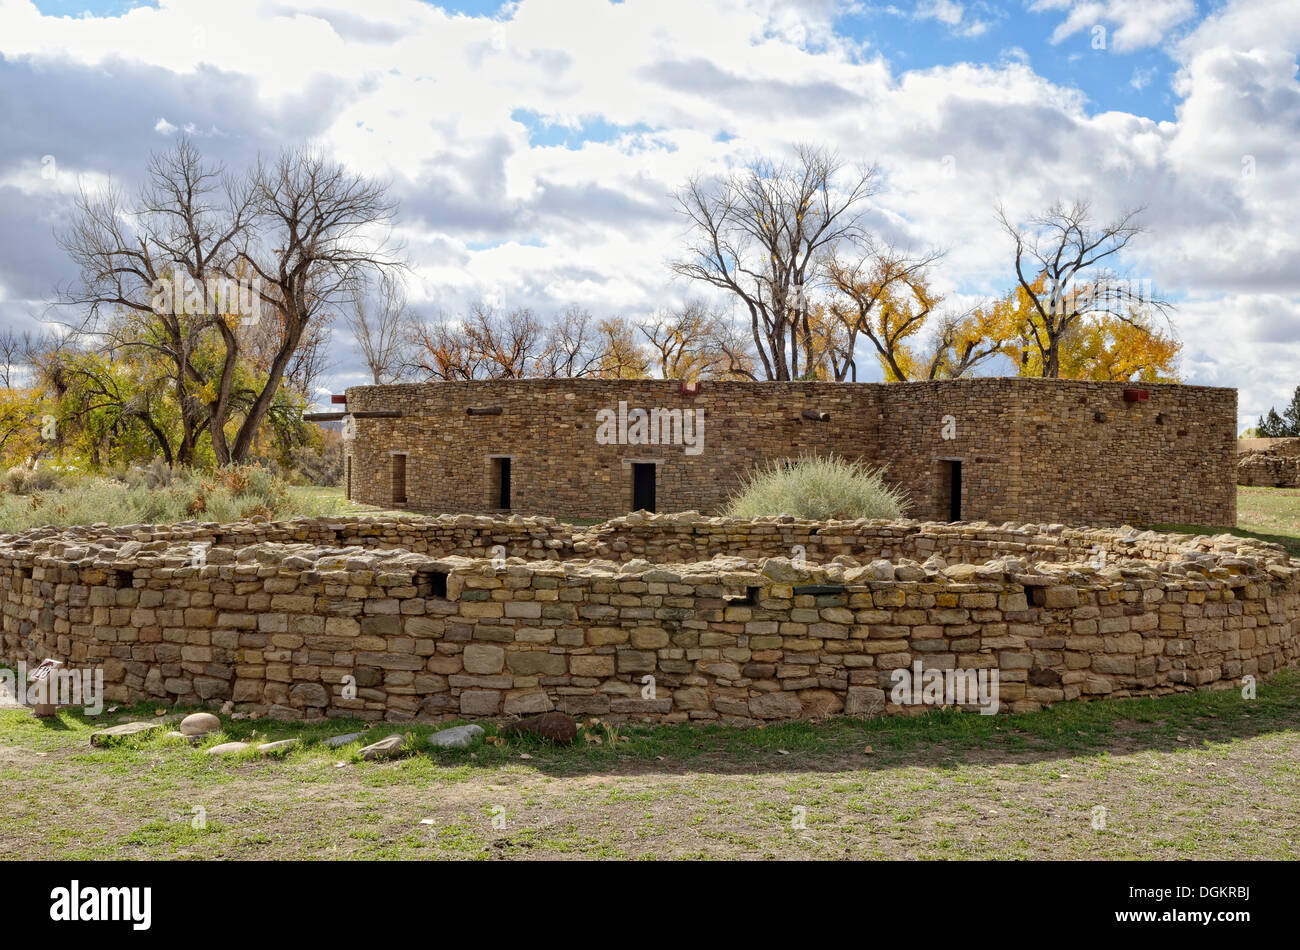 Great Kiva, historic Anasazi settlement, Aztec Ruins National Monument, Aztec, New Mexico, USA - Stock Image